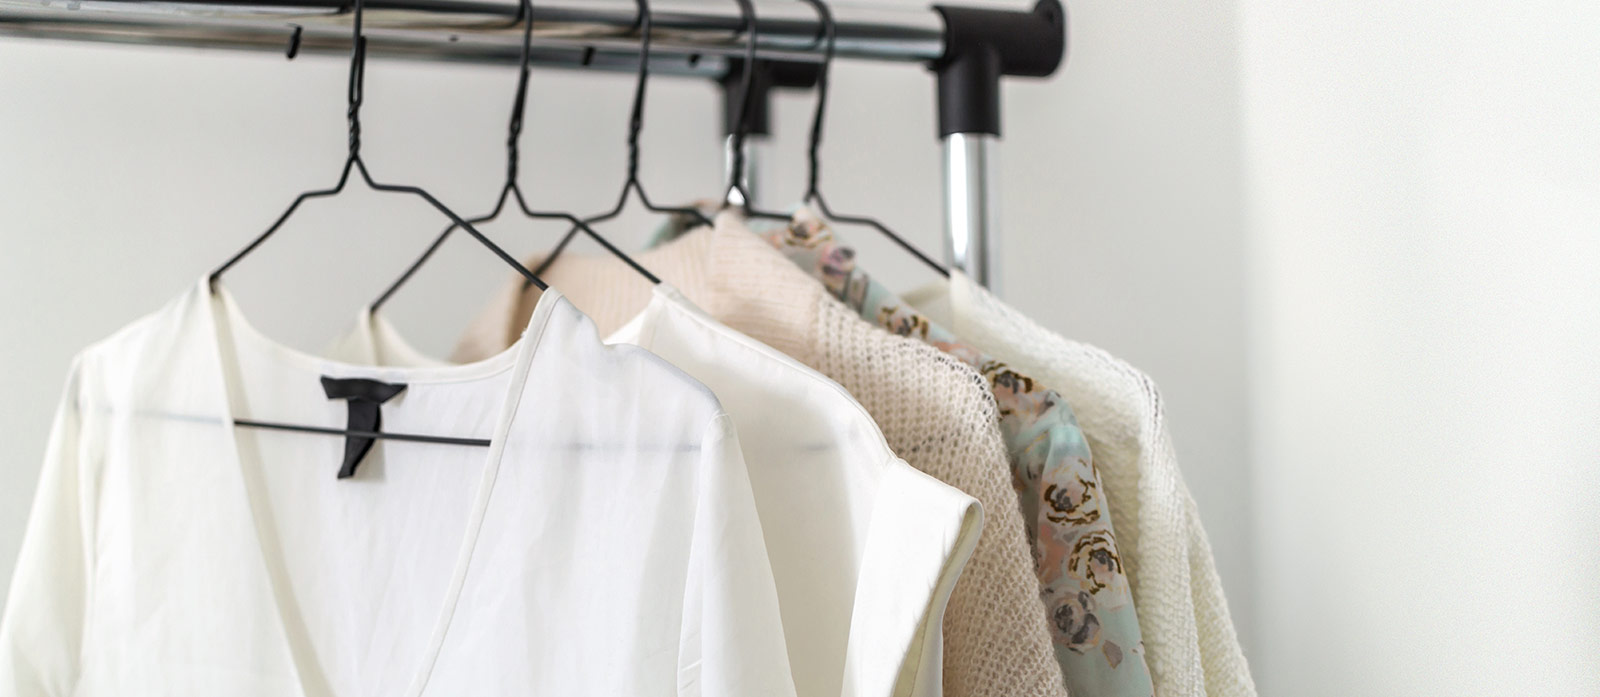 How to build your very own capsule wardrobe in 5 easy steps